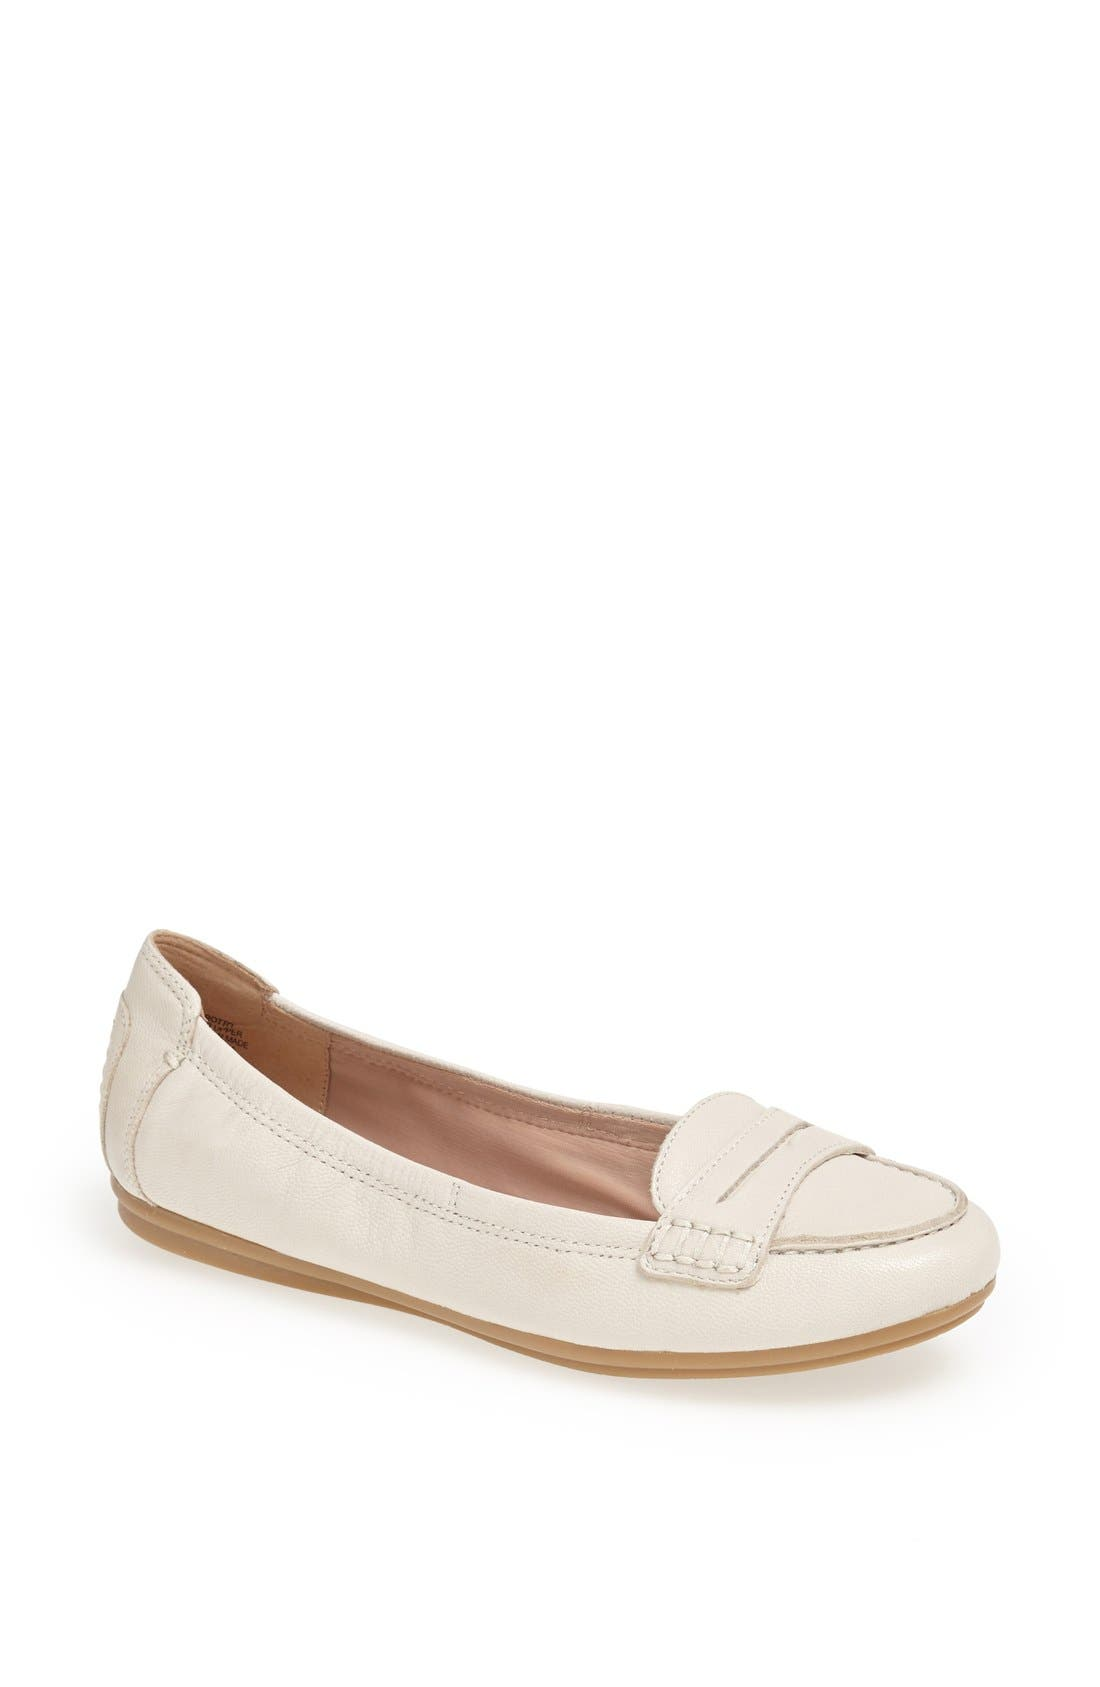 Alternate Image 1 Selected - Easy Spirit 'e360 - Grotto' Leather Penny Loafer (Women)